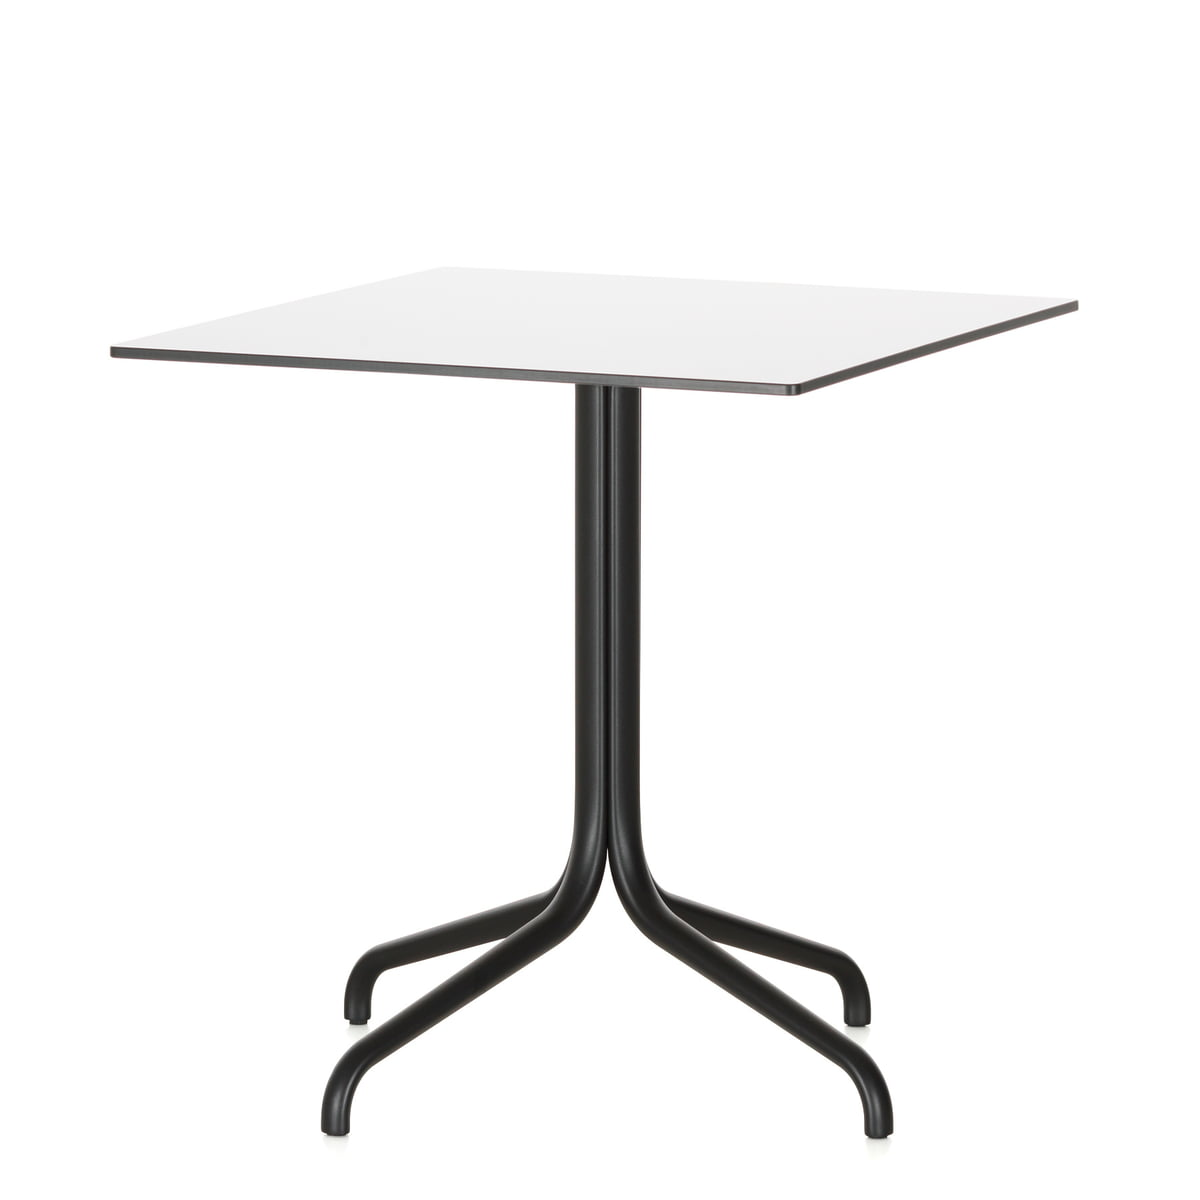 Belleville Bistro Table, Square, 75 X 75 Cm By Vitra In White